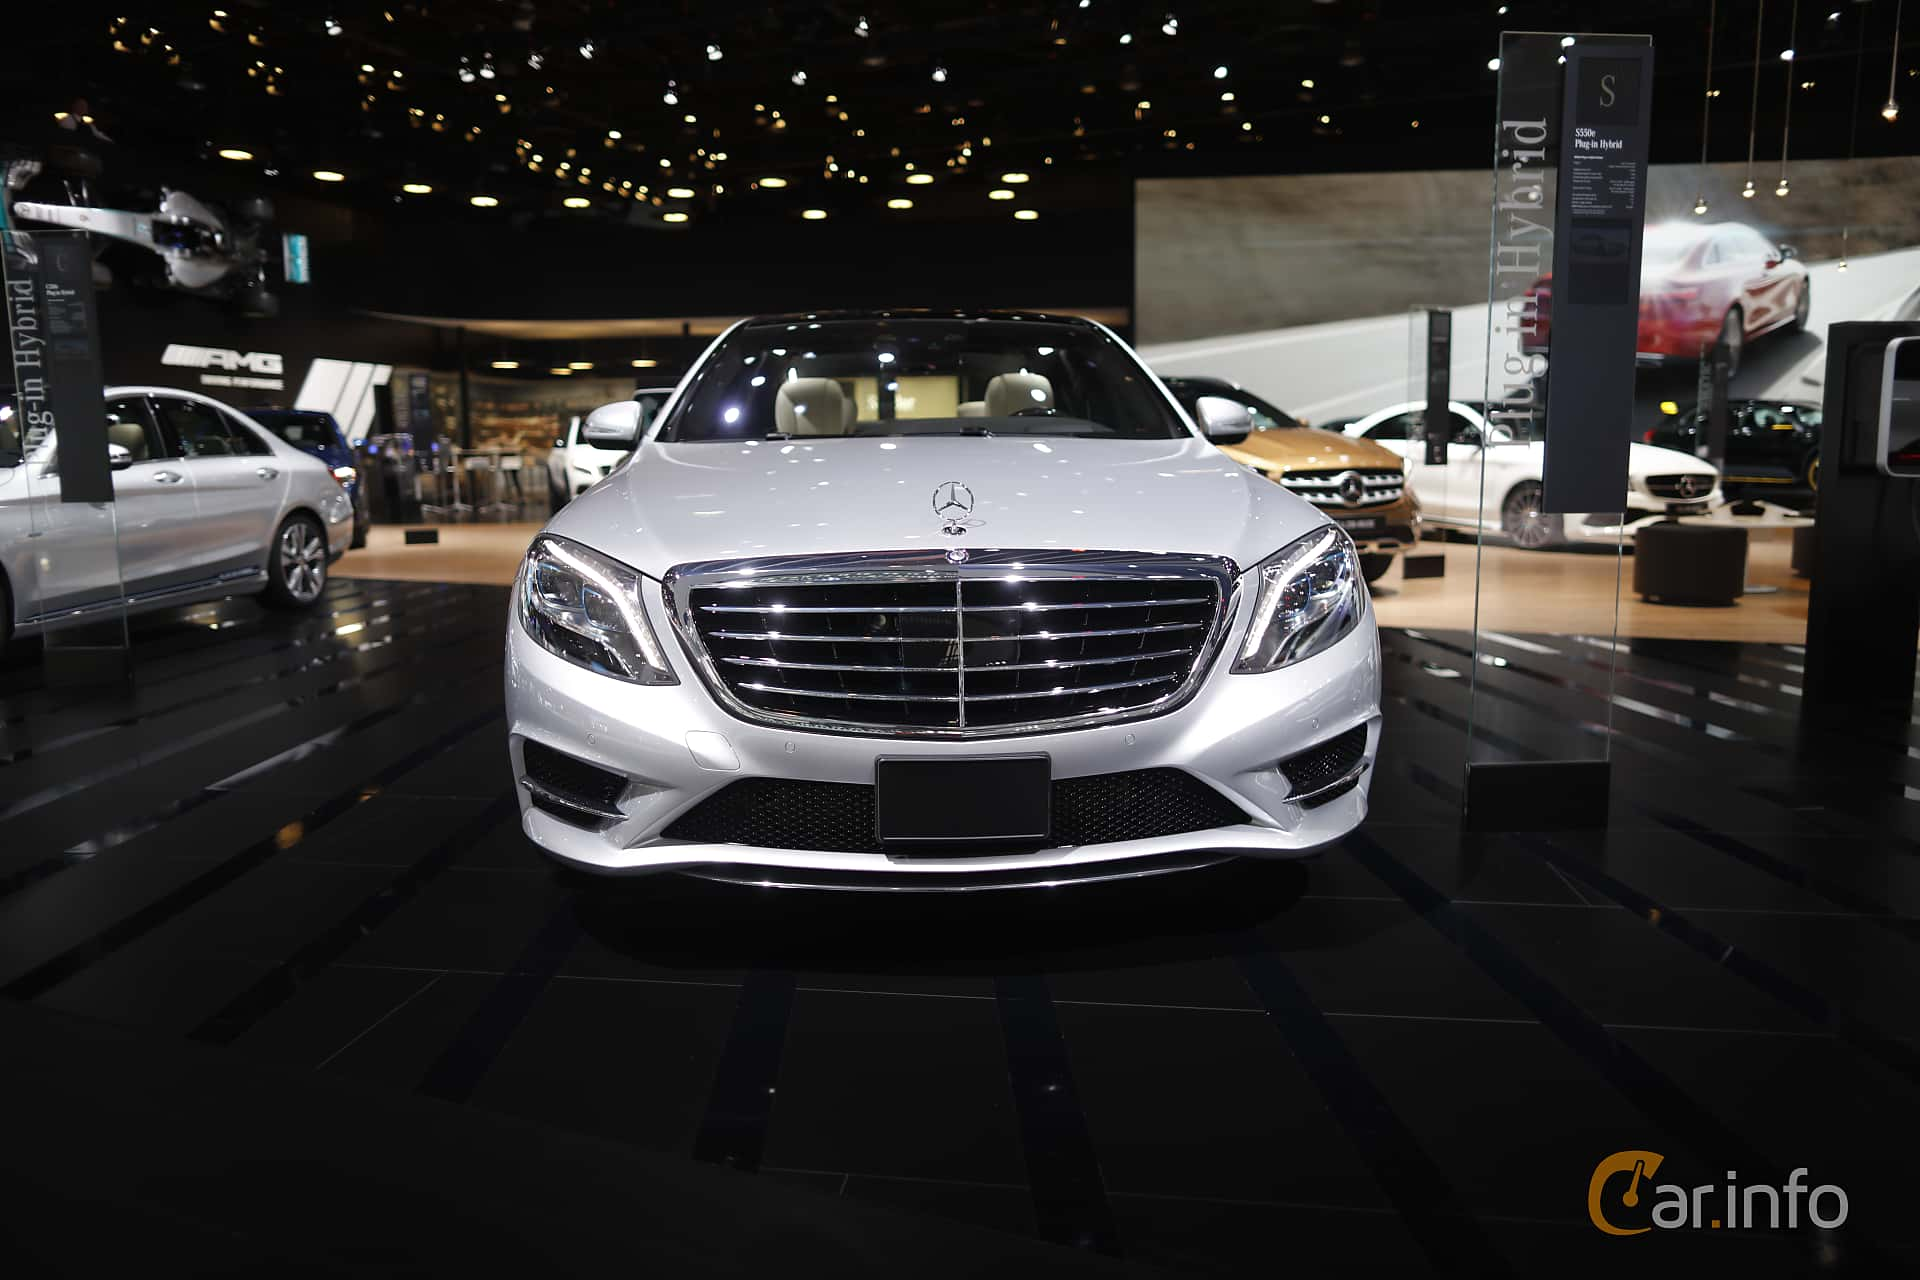 Mercedes-Benz S 500 e L 3.0 V6 7G-Tronic Plus, 442hp, 325kW, 2017 at North American International Auto Show 2017